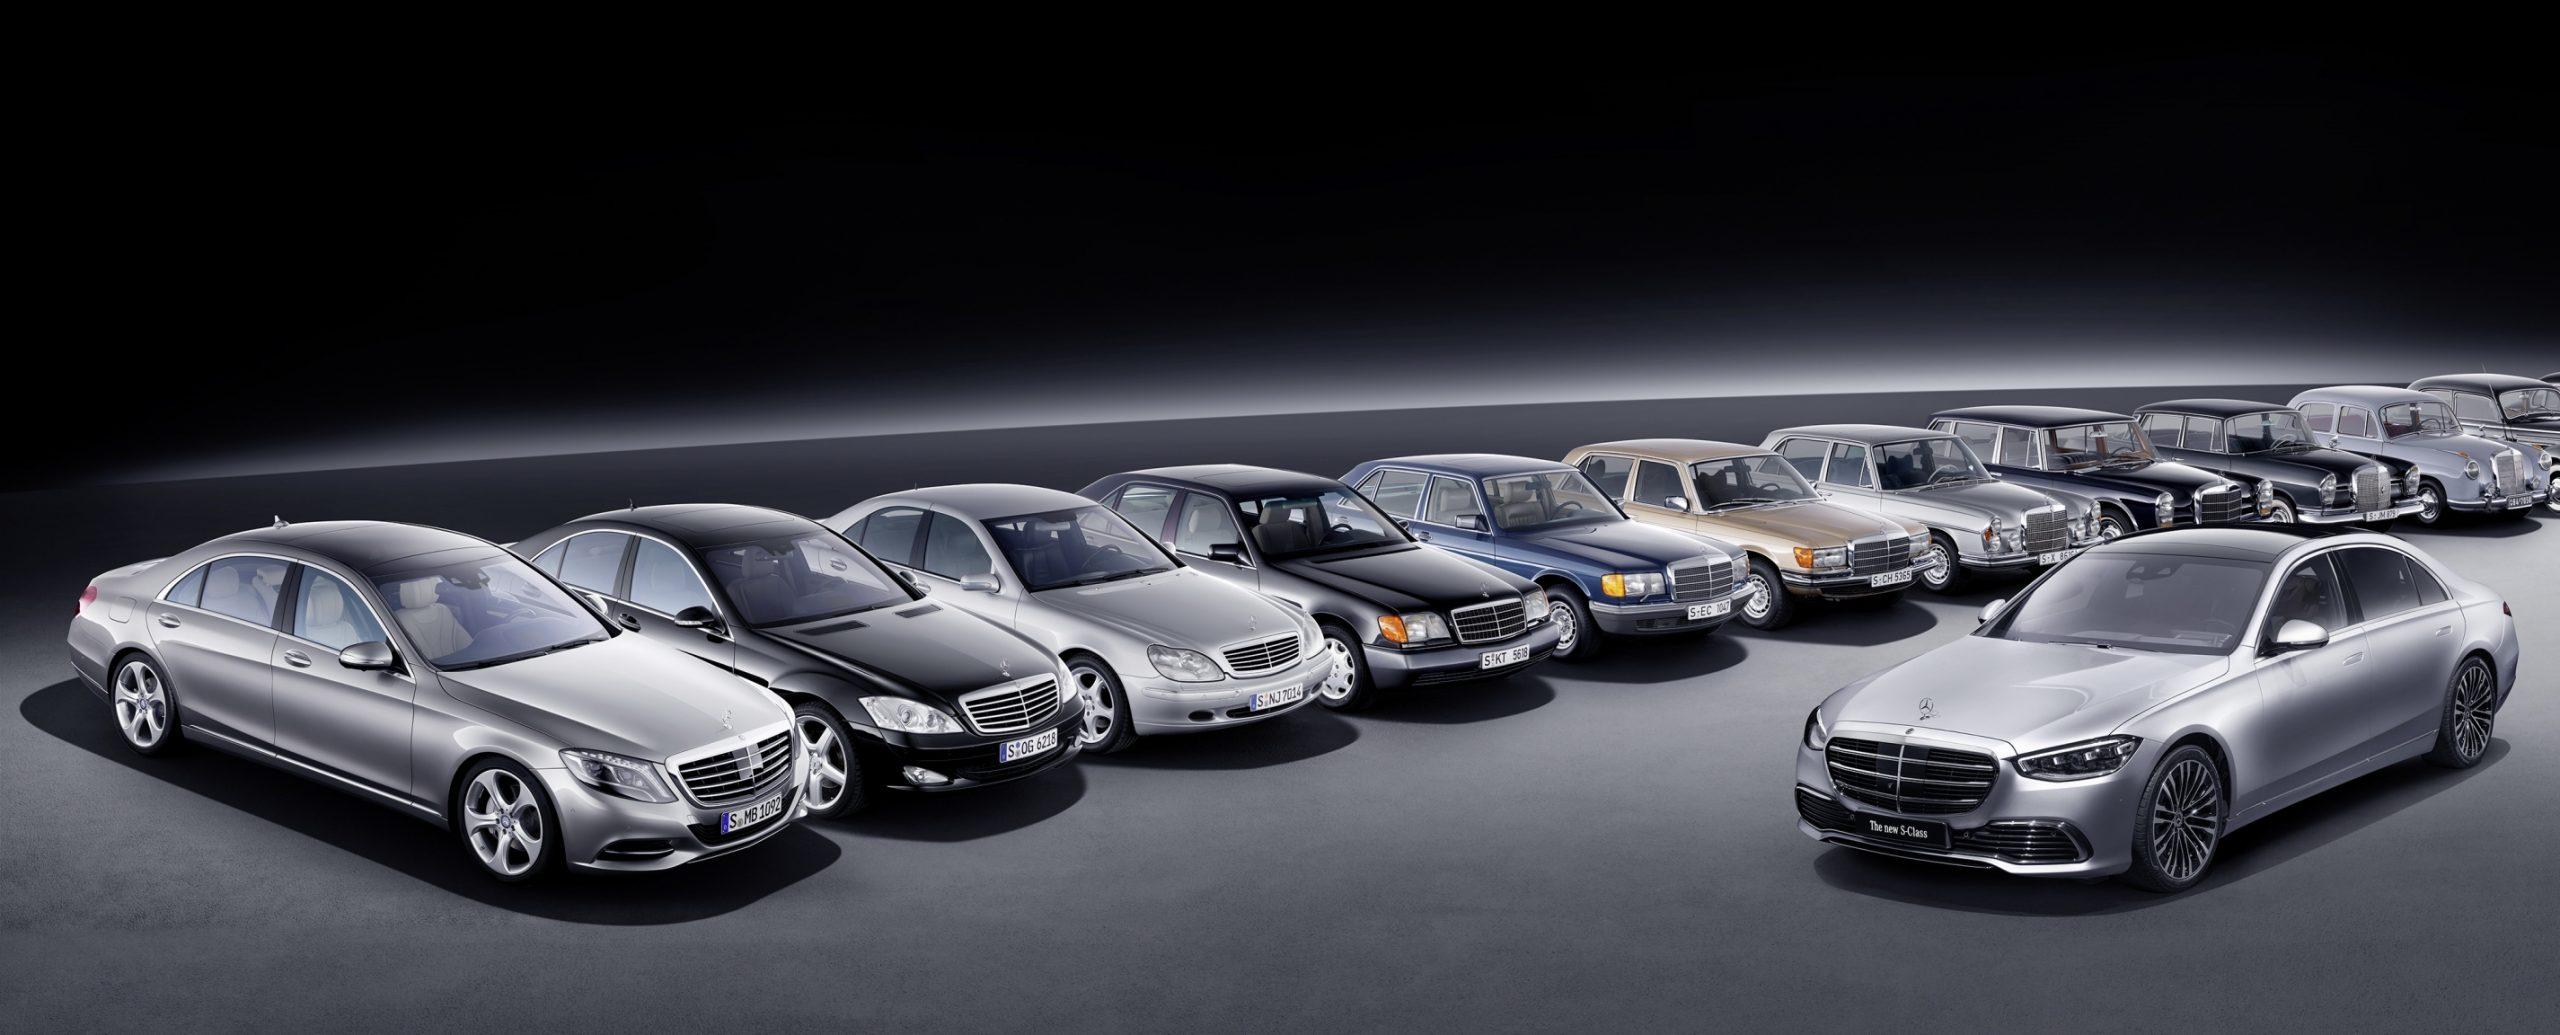 Mercedes S-Class: a history of firsts